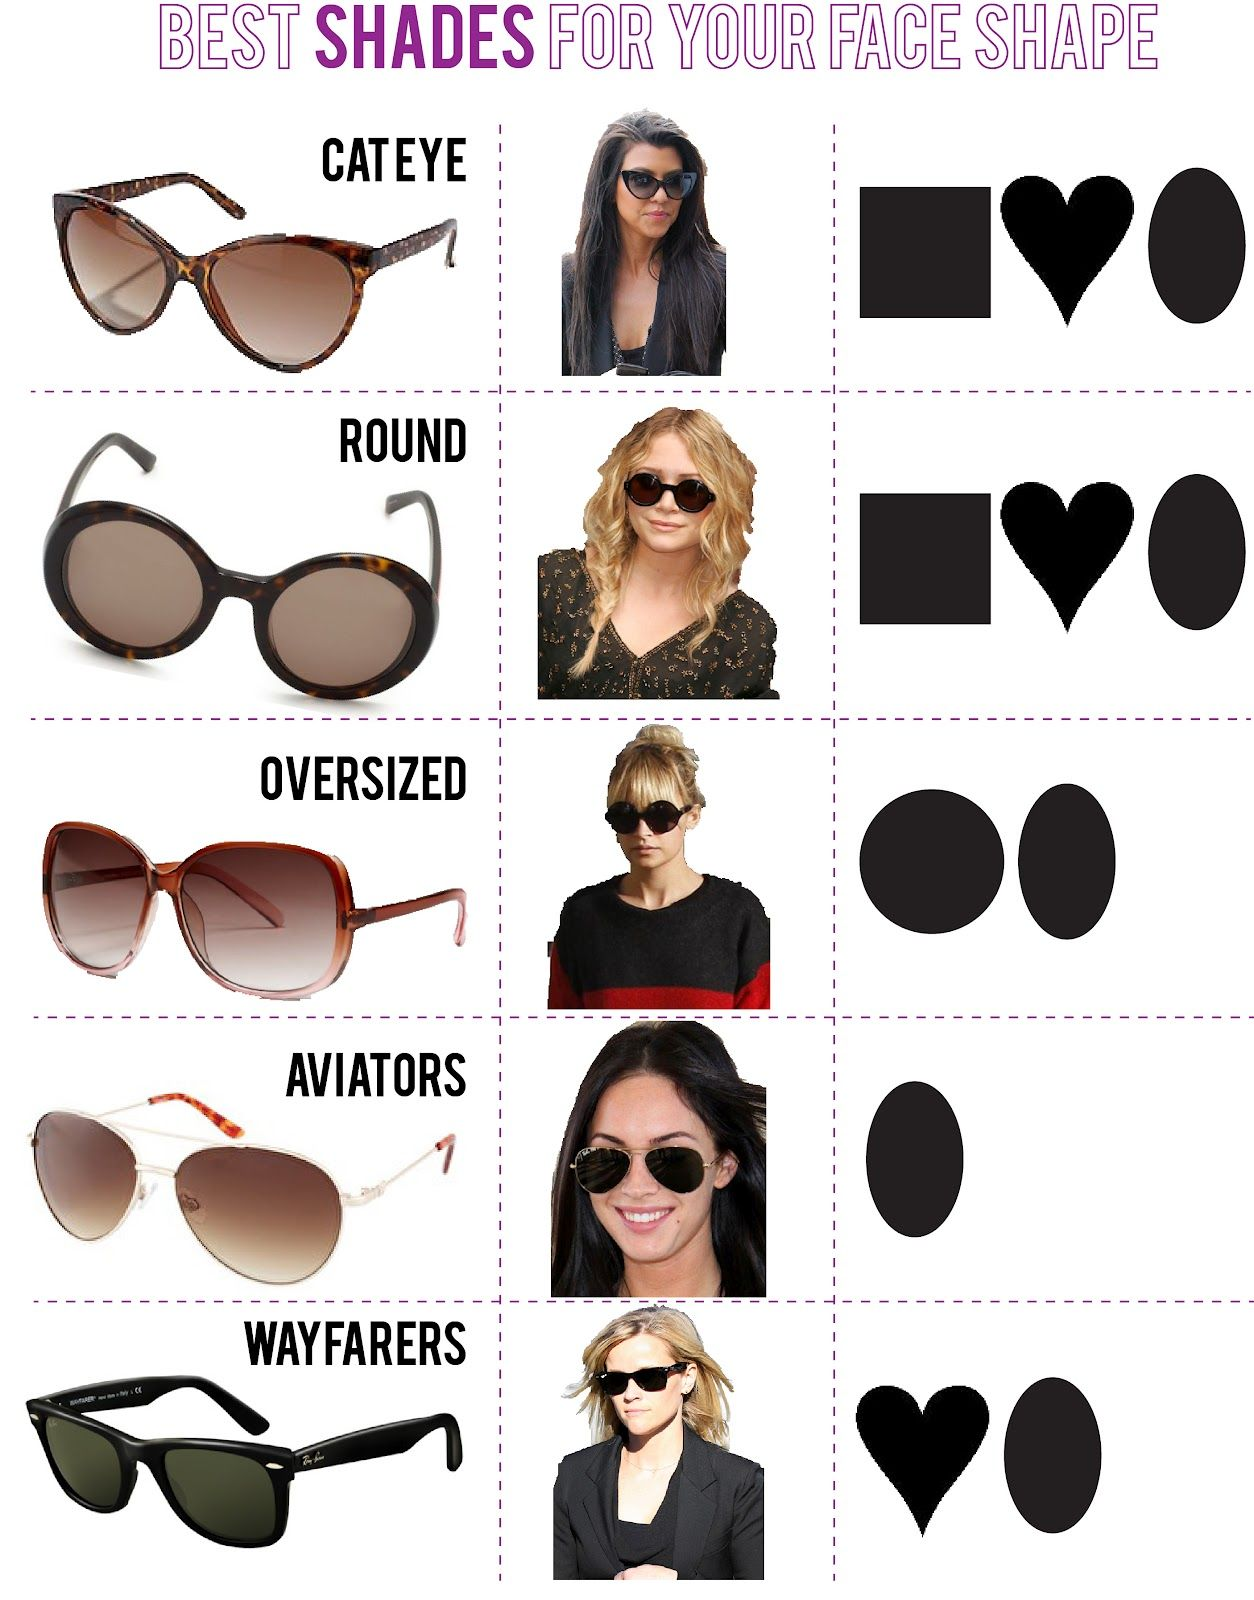 sunglasses and face shapes http://www.forevergrace/sunglasses